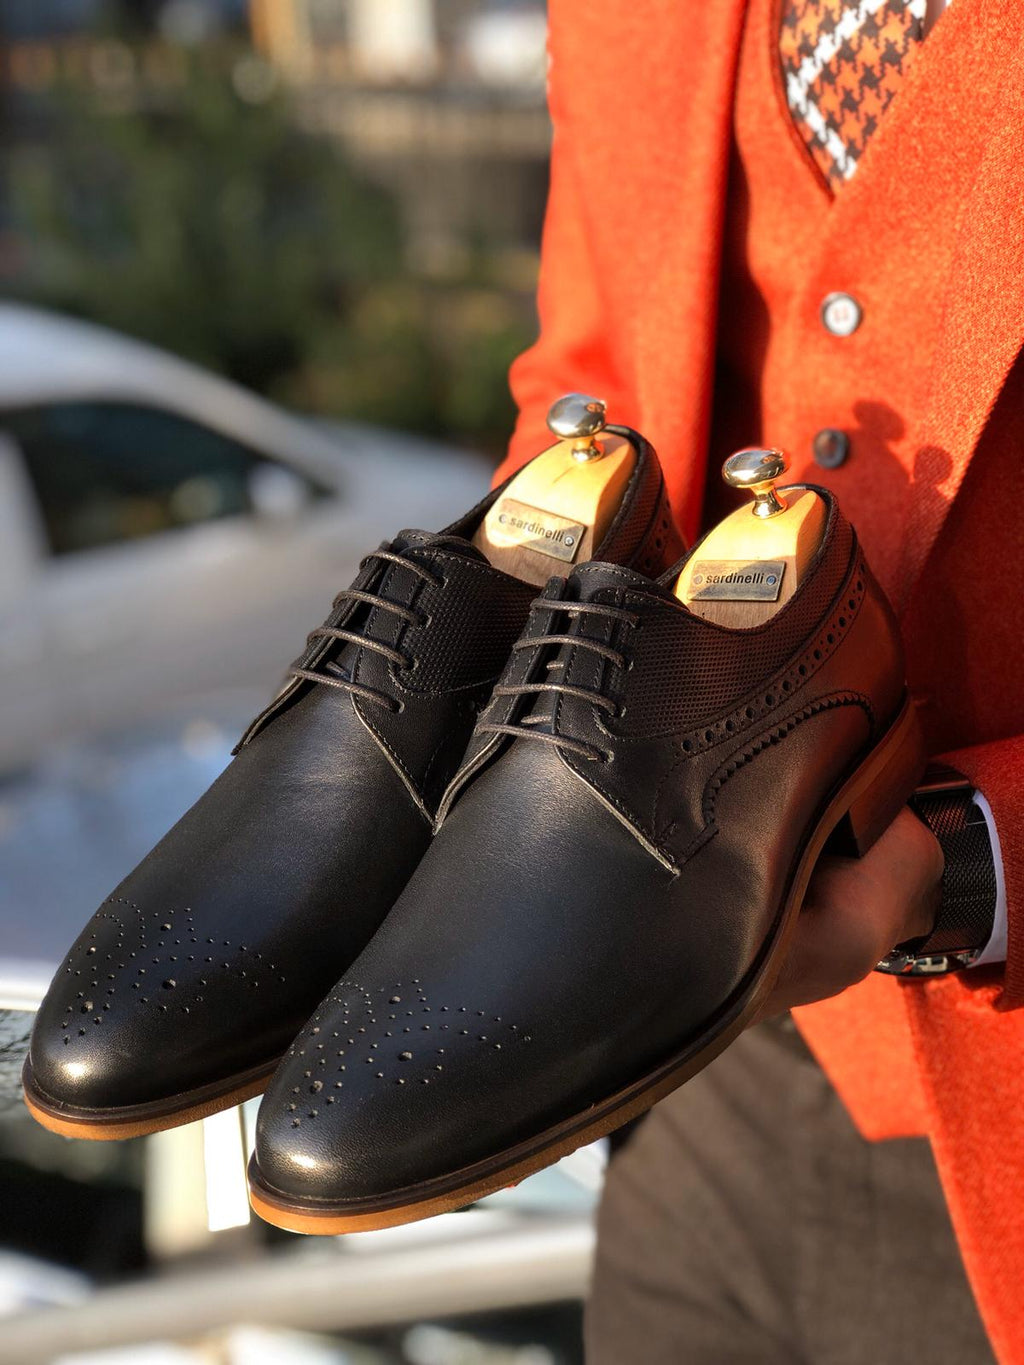 Sardinelli Laced Classic Leather Shoes Black